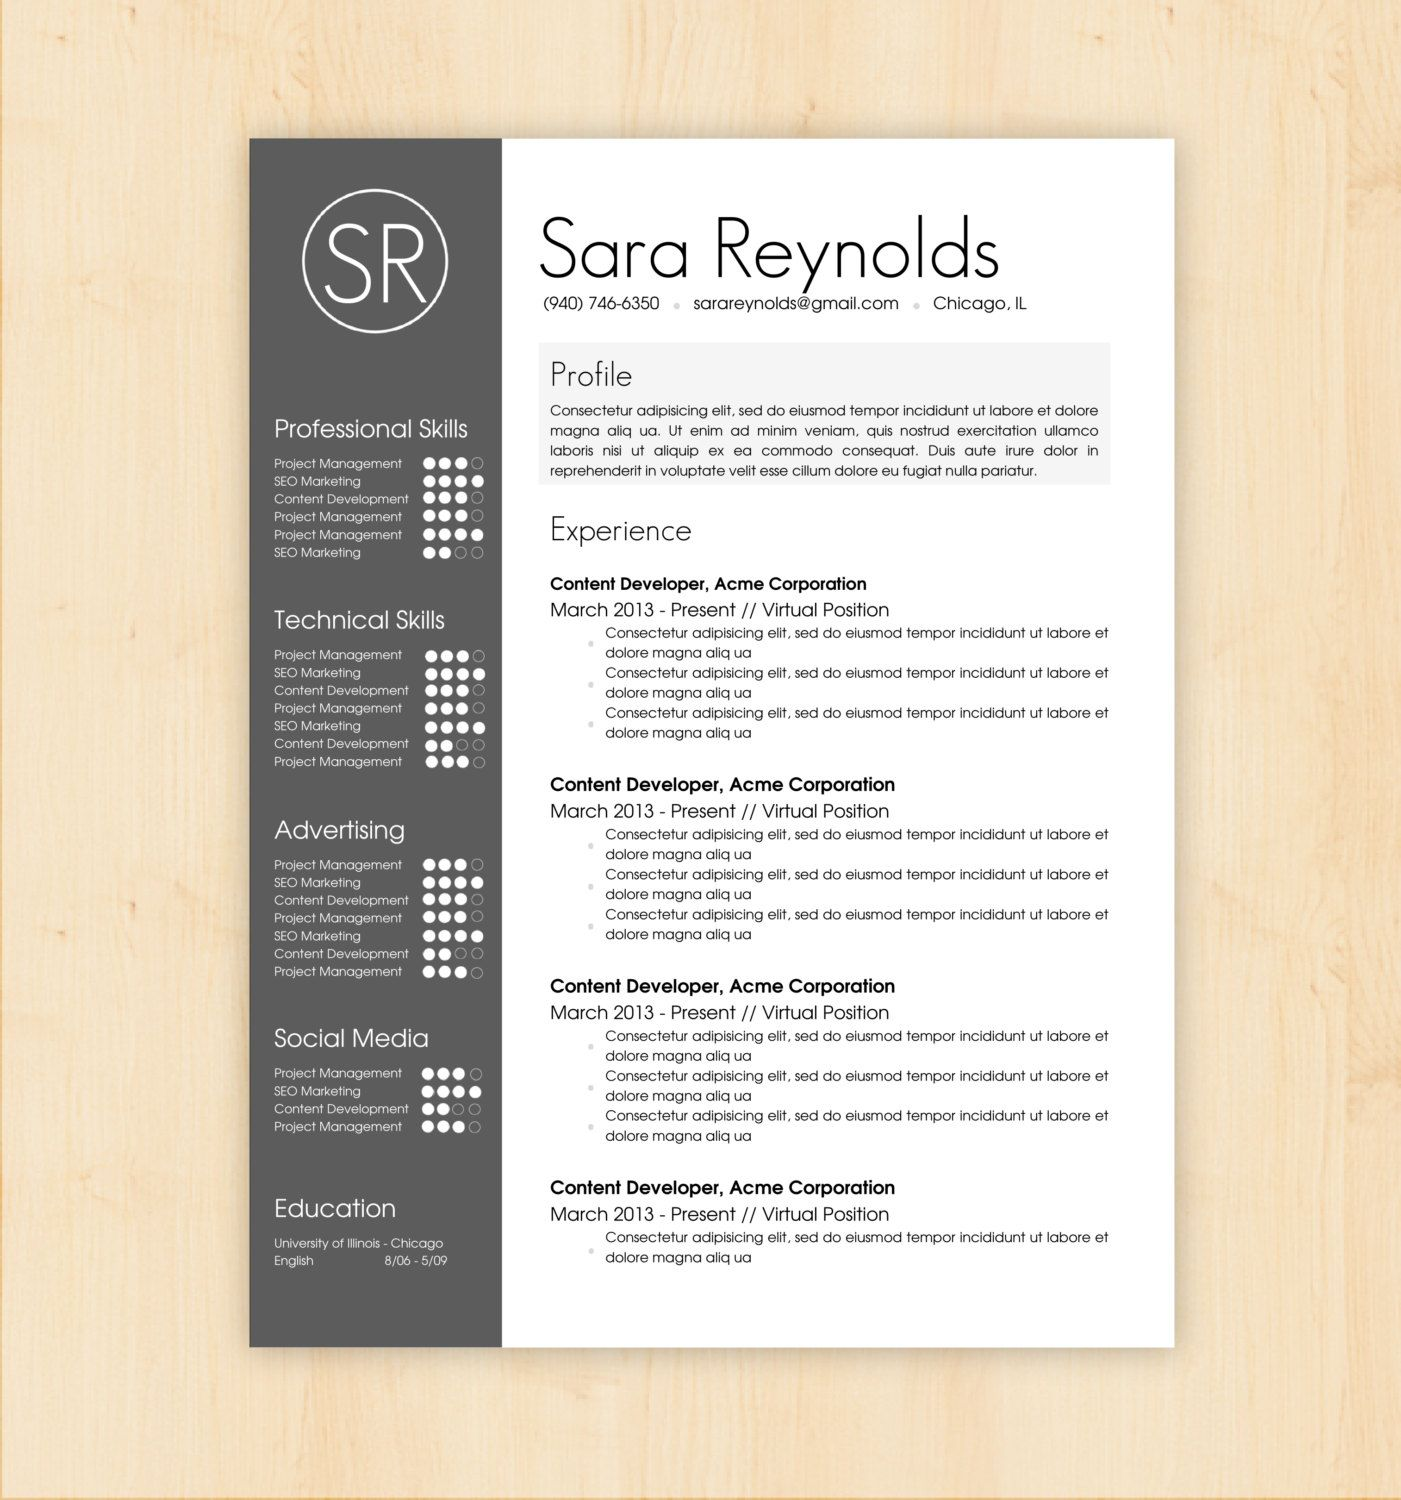 Resume Free Download Resume Design Templates resume format in word file download simple for template cover letter cv w business temp